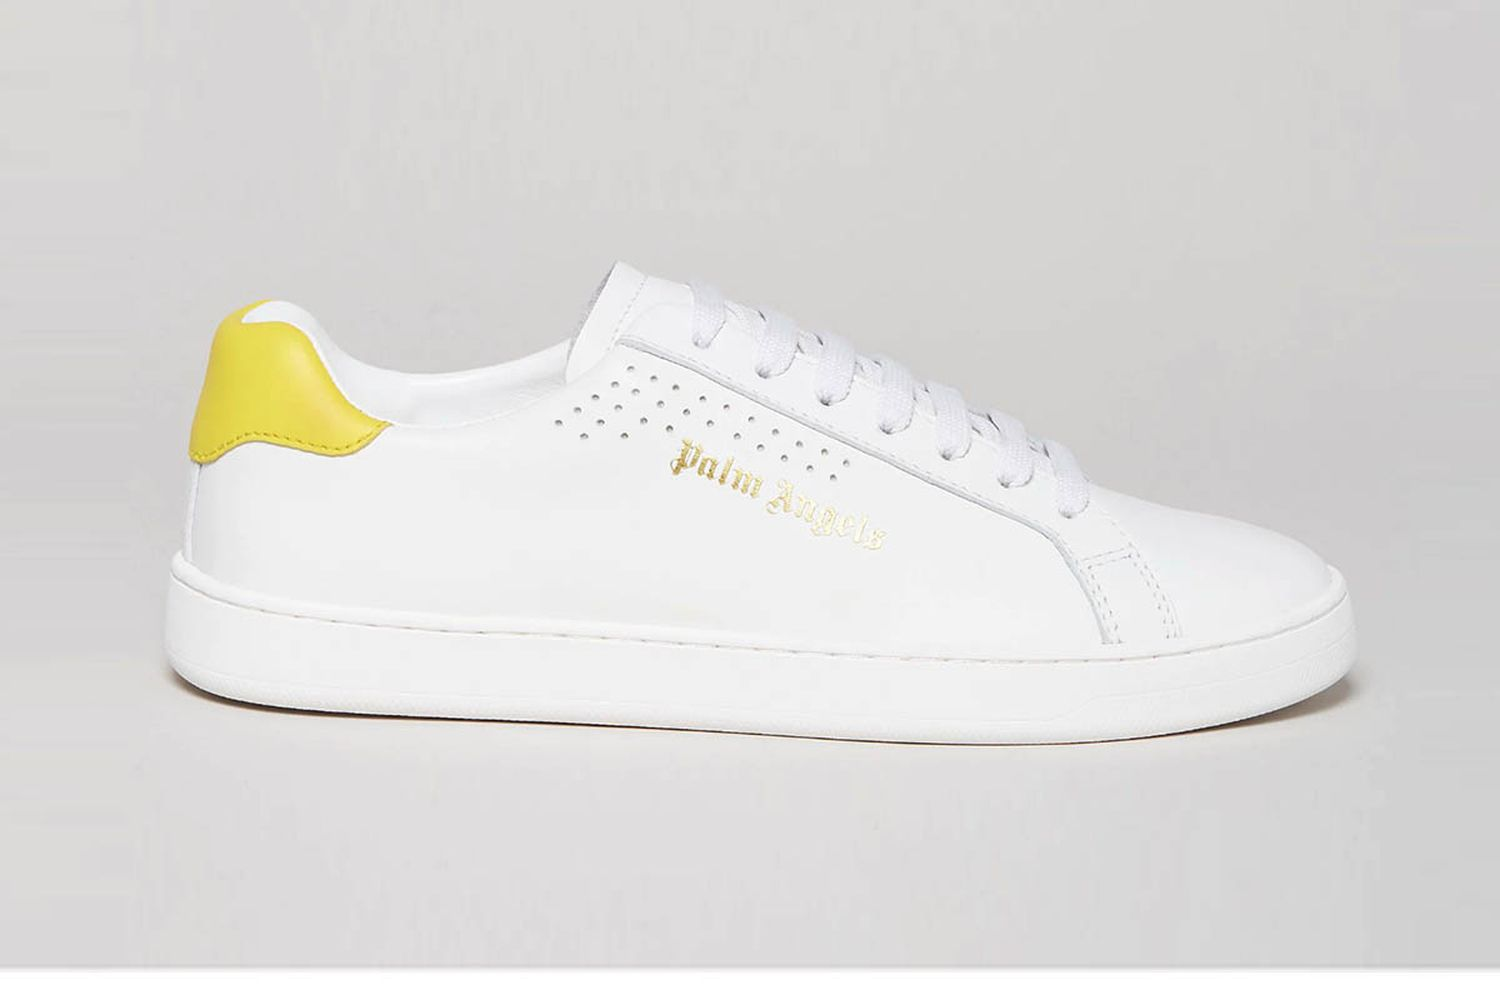 Palm One Sneakers